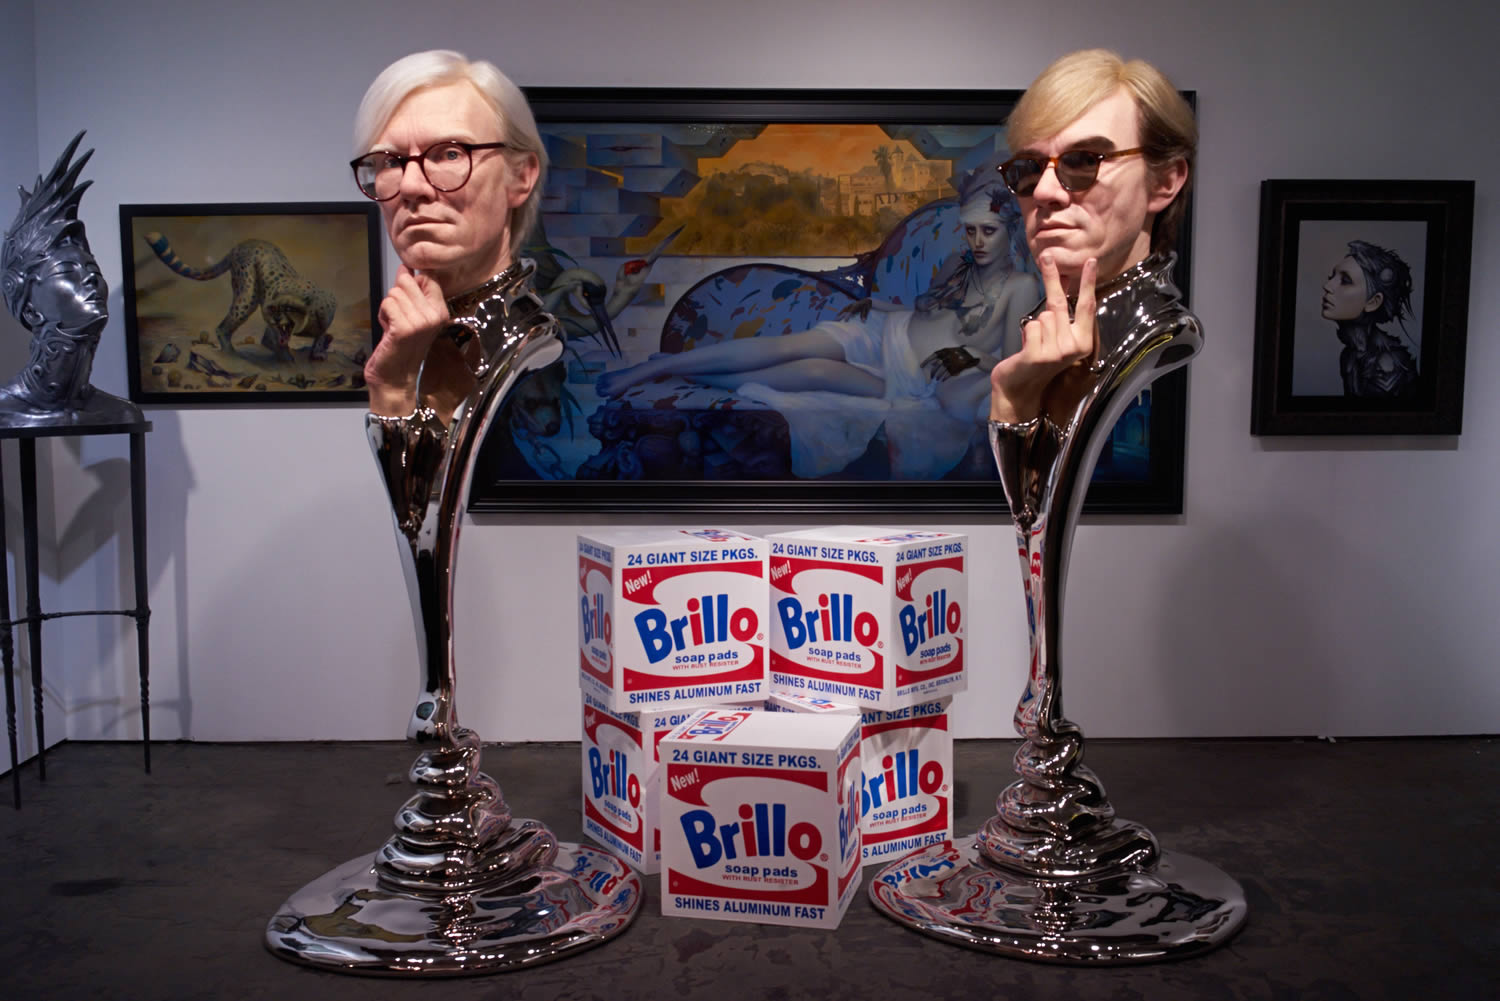 andy warhol sculptures in gallery